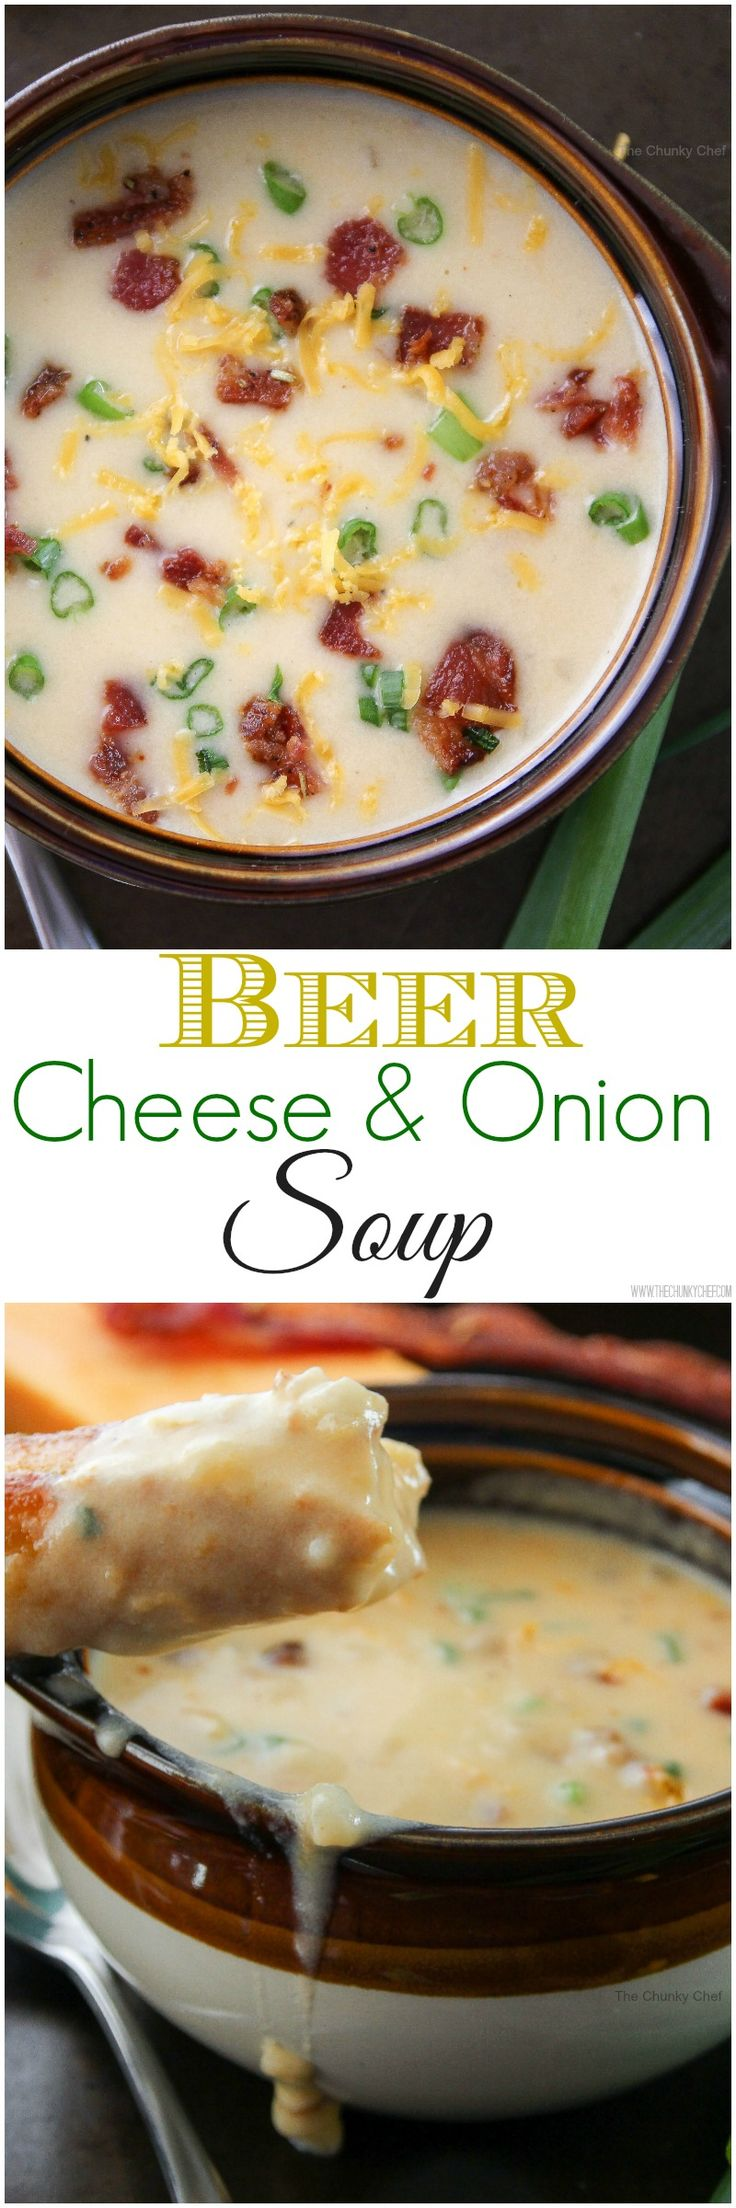 Beer Cheese Soup - You know that amazing beer cheese dip you get at pubs? Now you can make that at home, with the addition of flavorful caramelized onions!